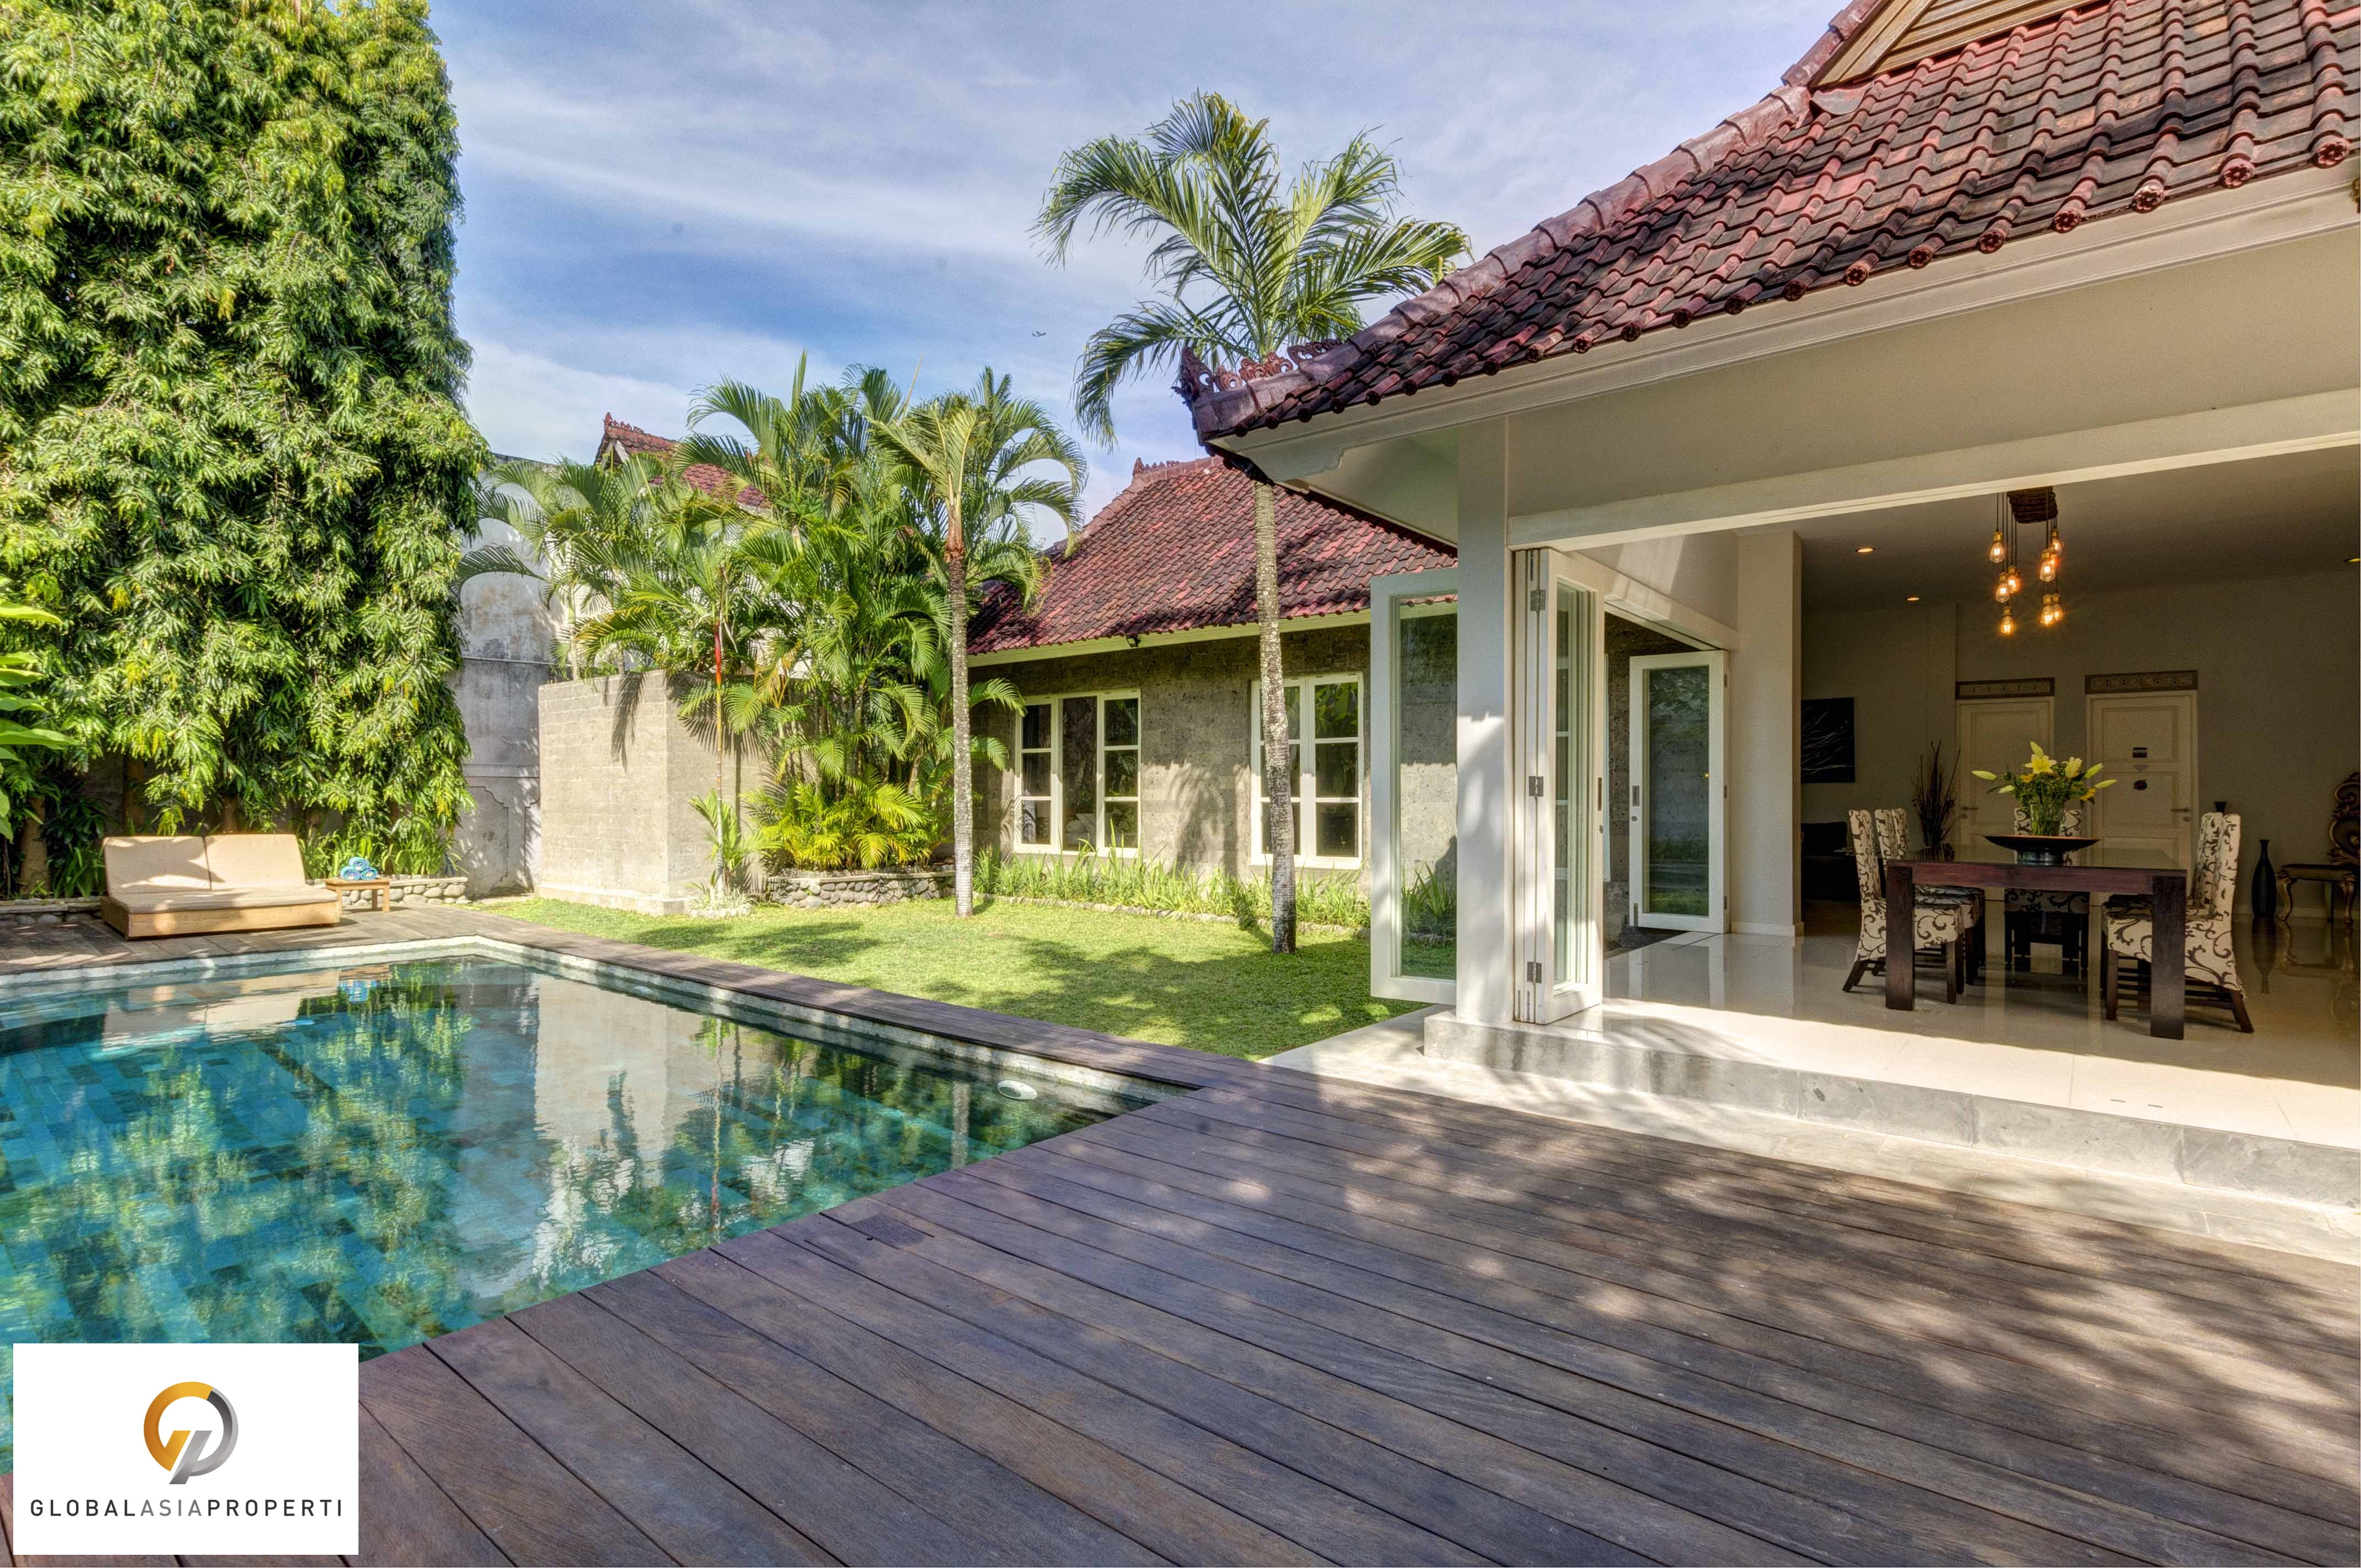 3a - GORGEOUS VILLA IN UMALAS FOR SALE